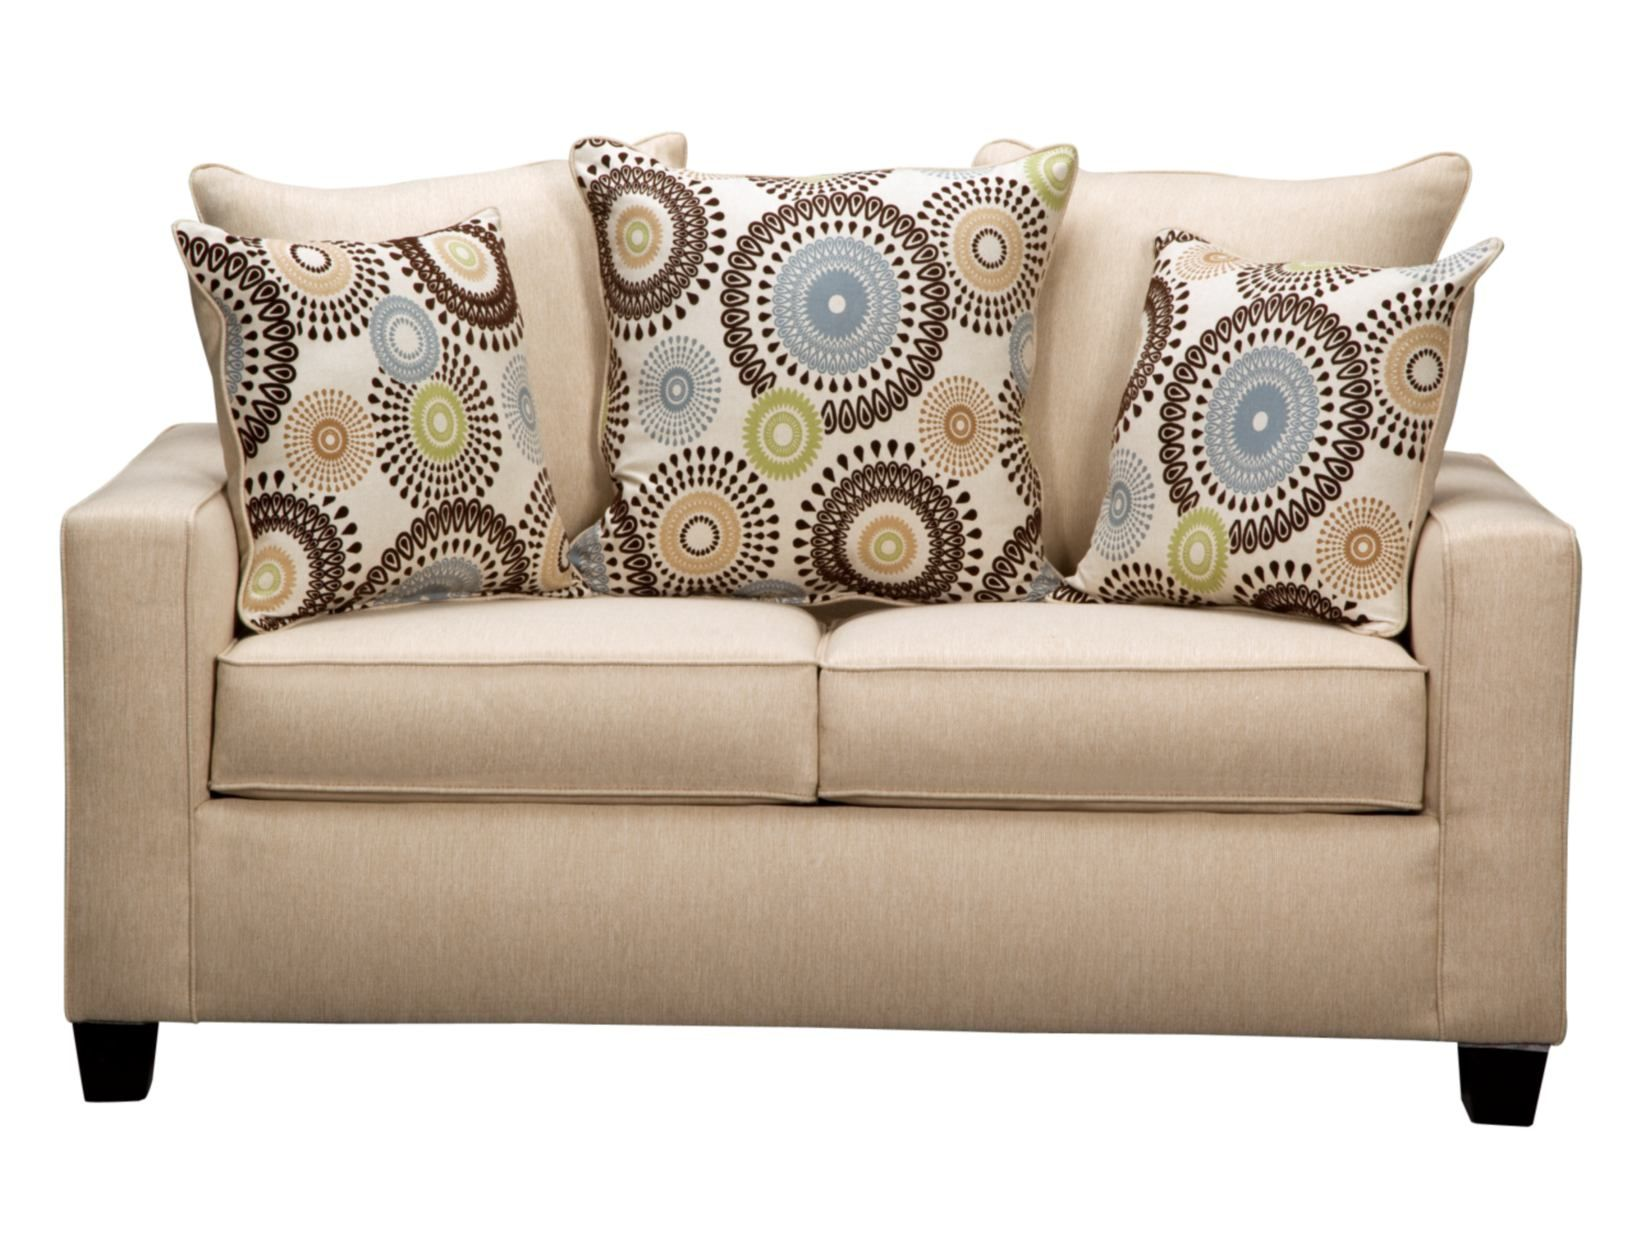 Stoked Cream Loveseat   Value City Furniture